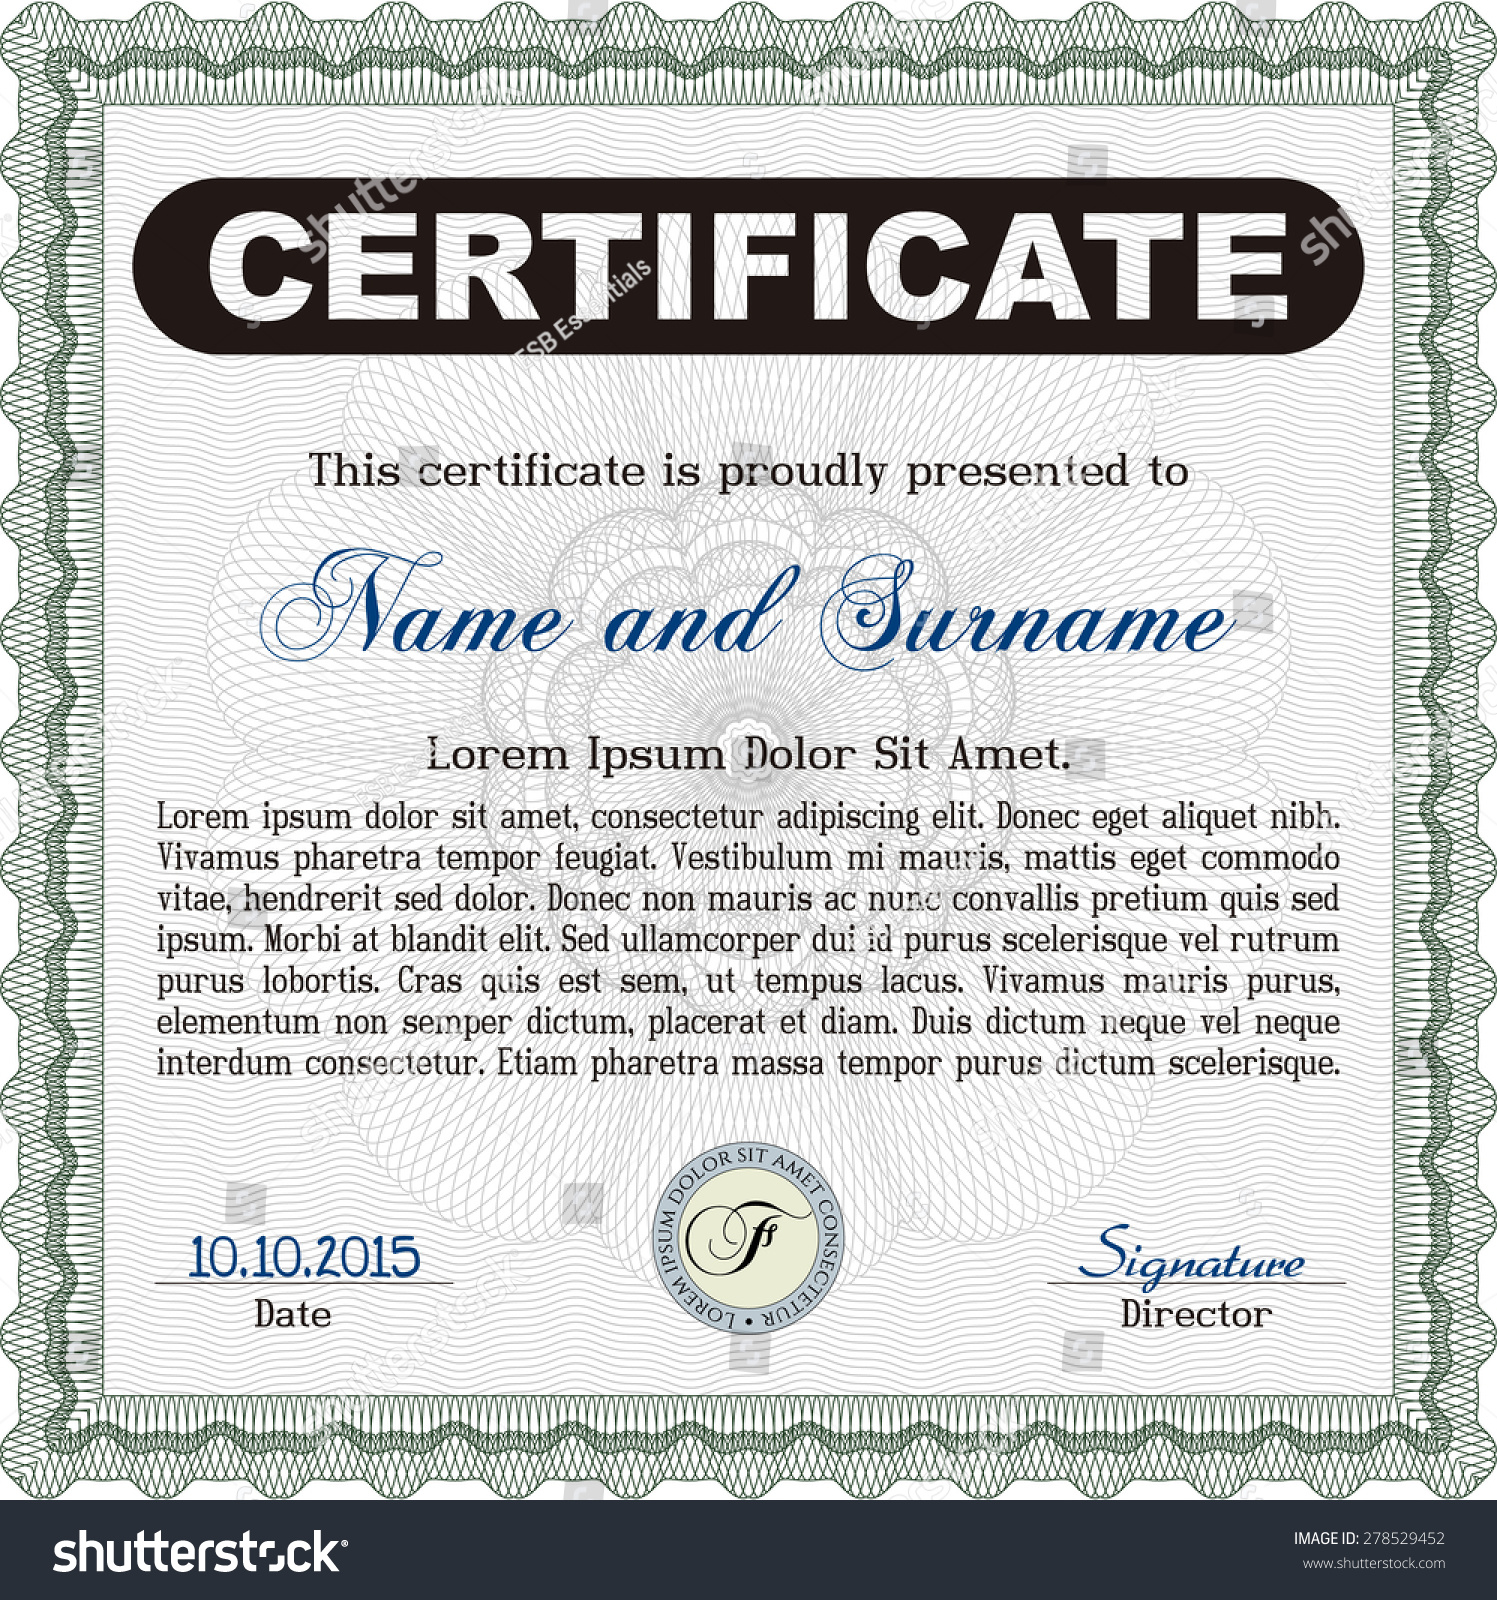 Diploma certificate template customizable easy edit stock vector diploma or certificate template customizable easy to edit and change colorsinter friendly yelopaper Images